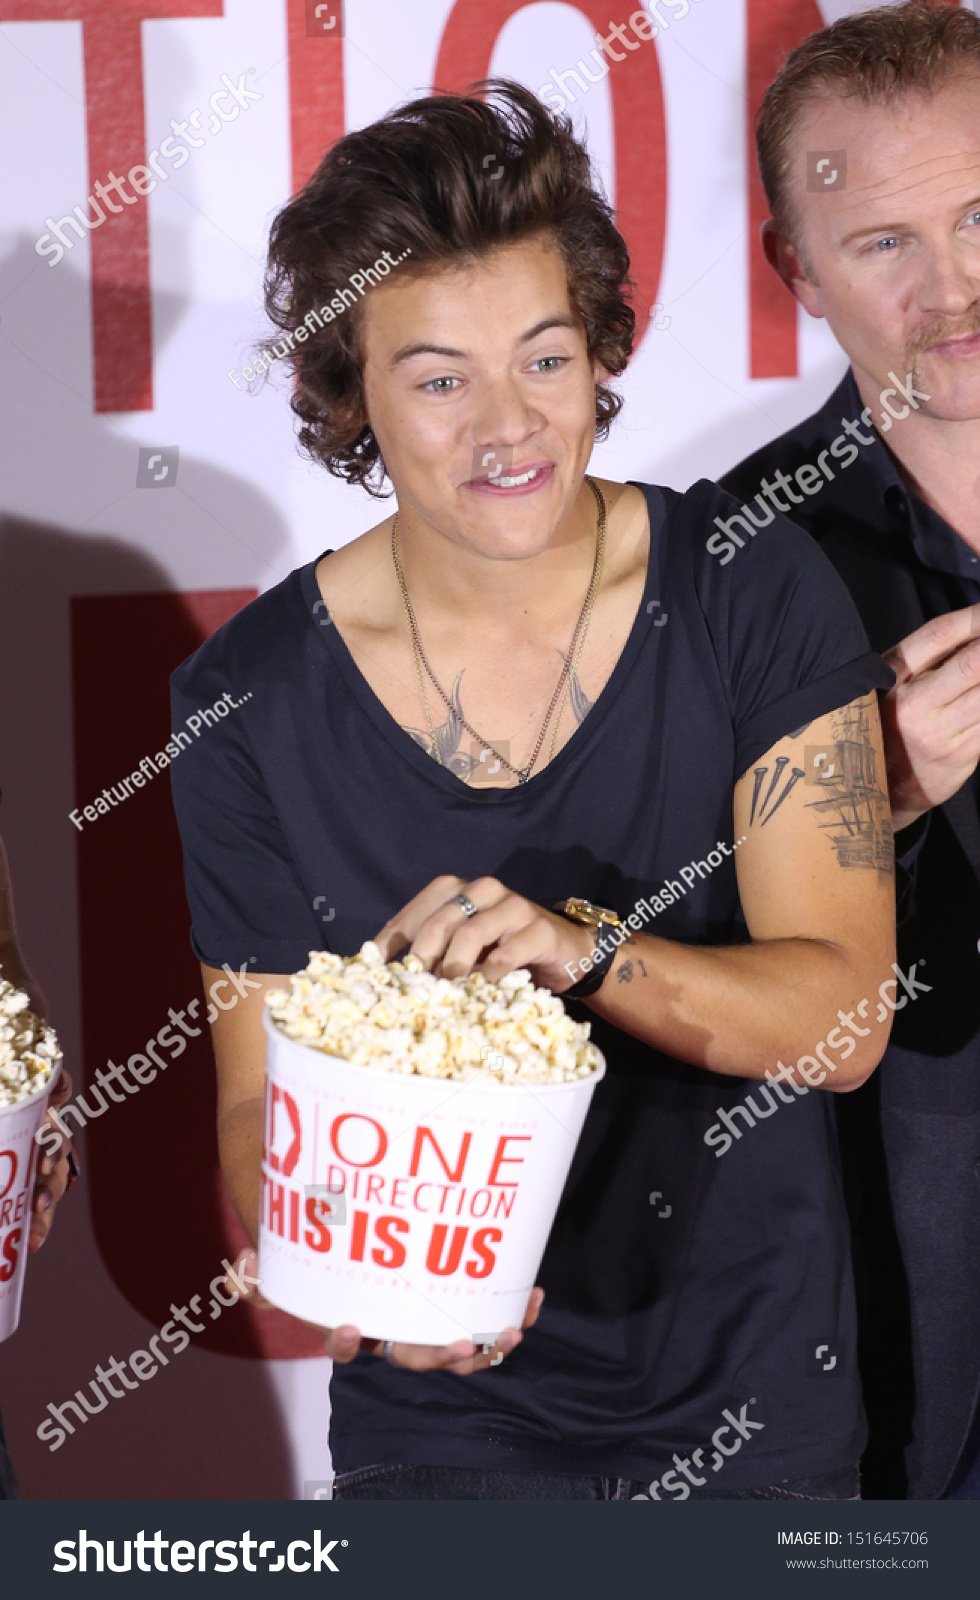 One Direction Harry Styles One Direction Stock Photo Edit Now